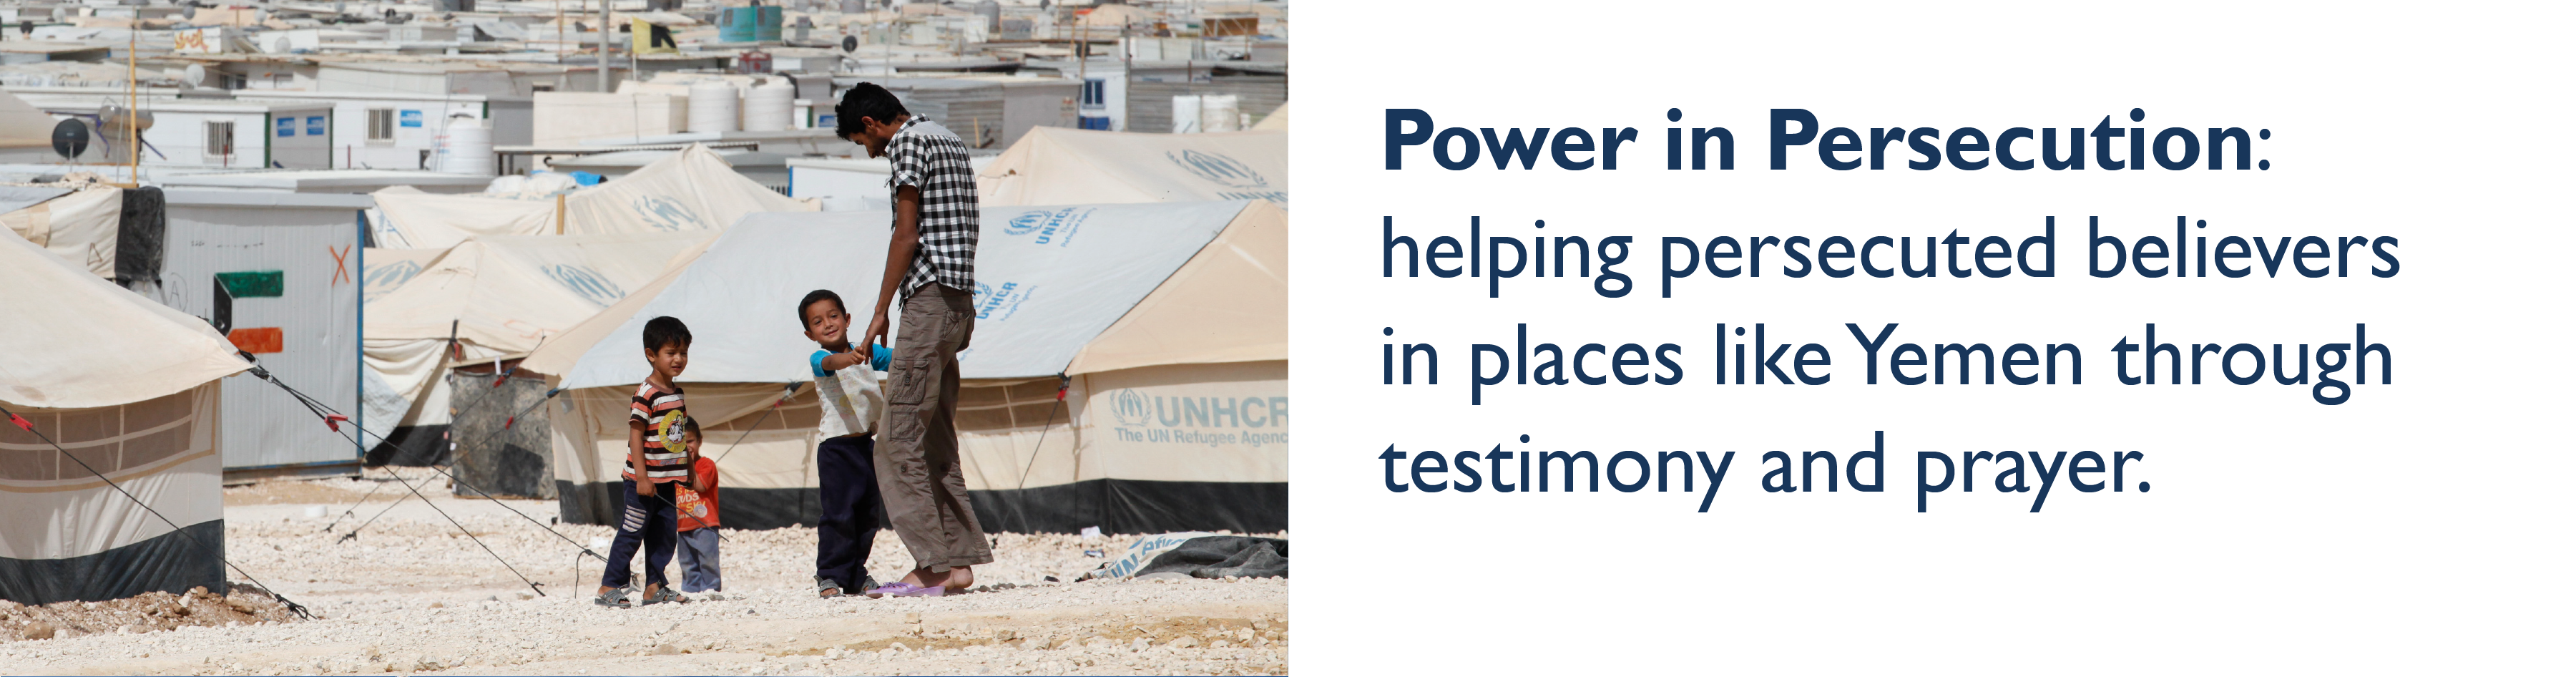 Power in Persecution: a programme helping persecuted believers in places like Yemen through testimony and prayer.